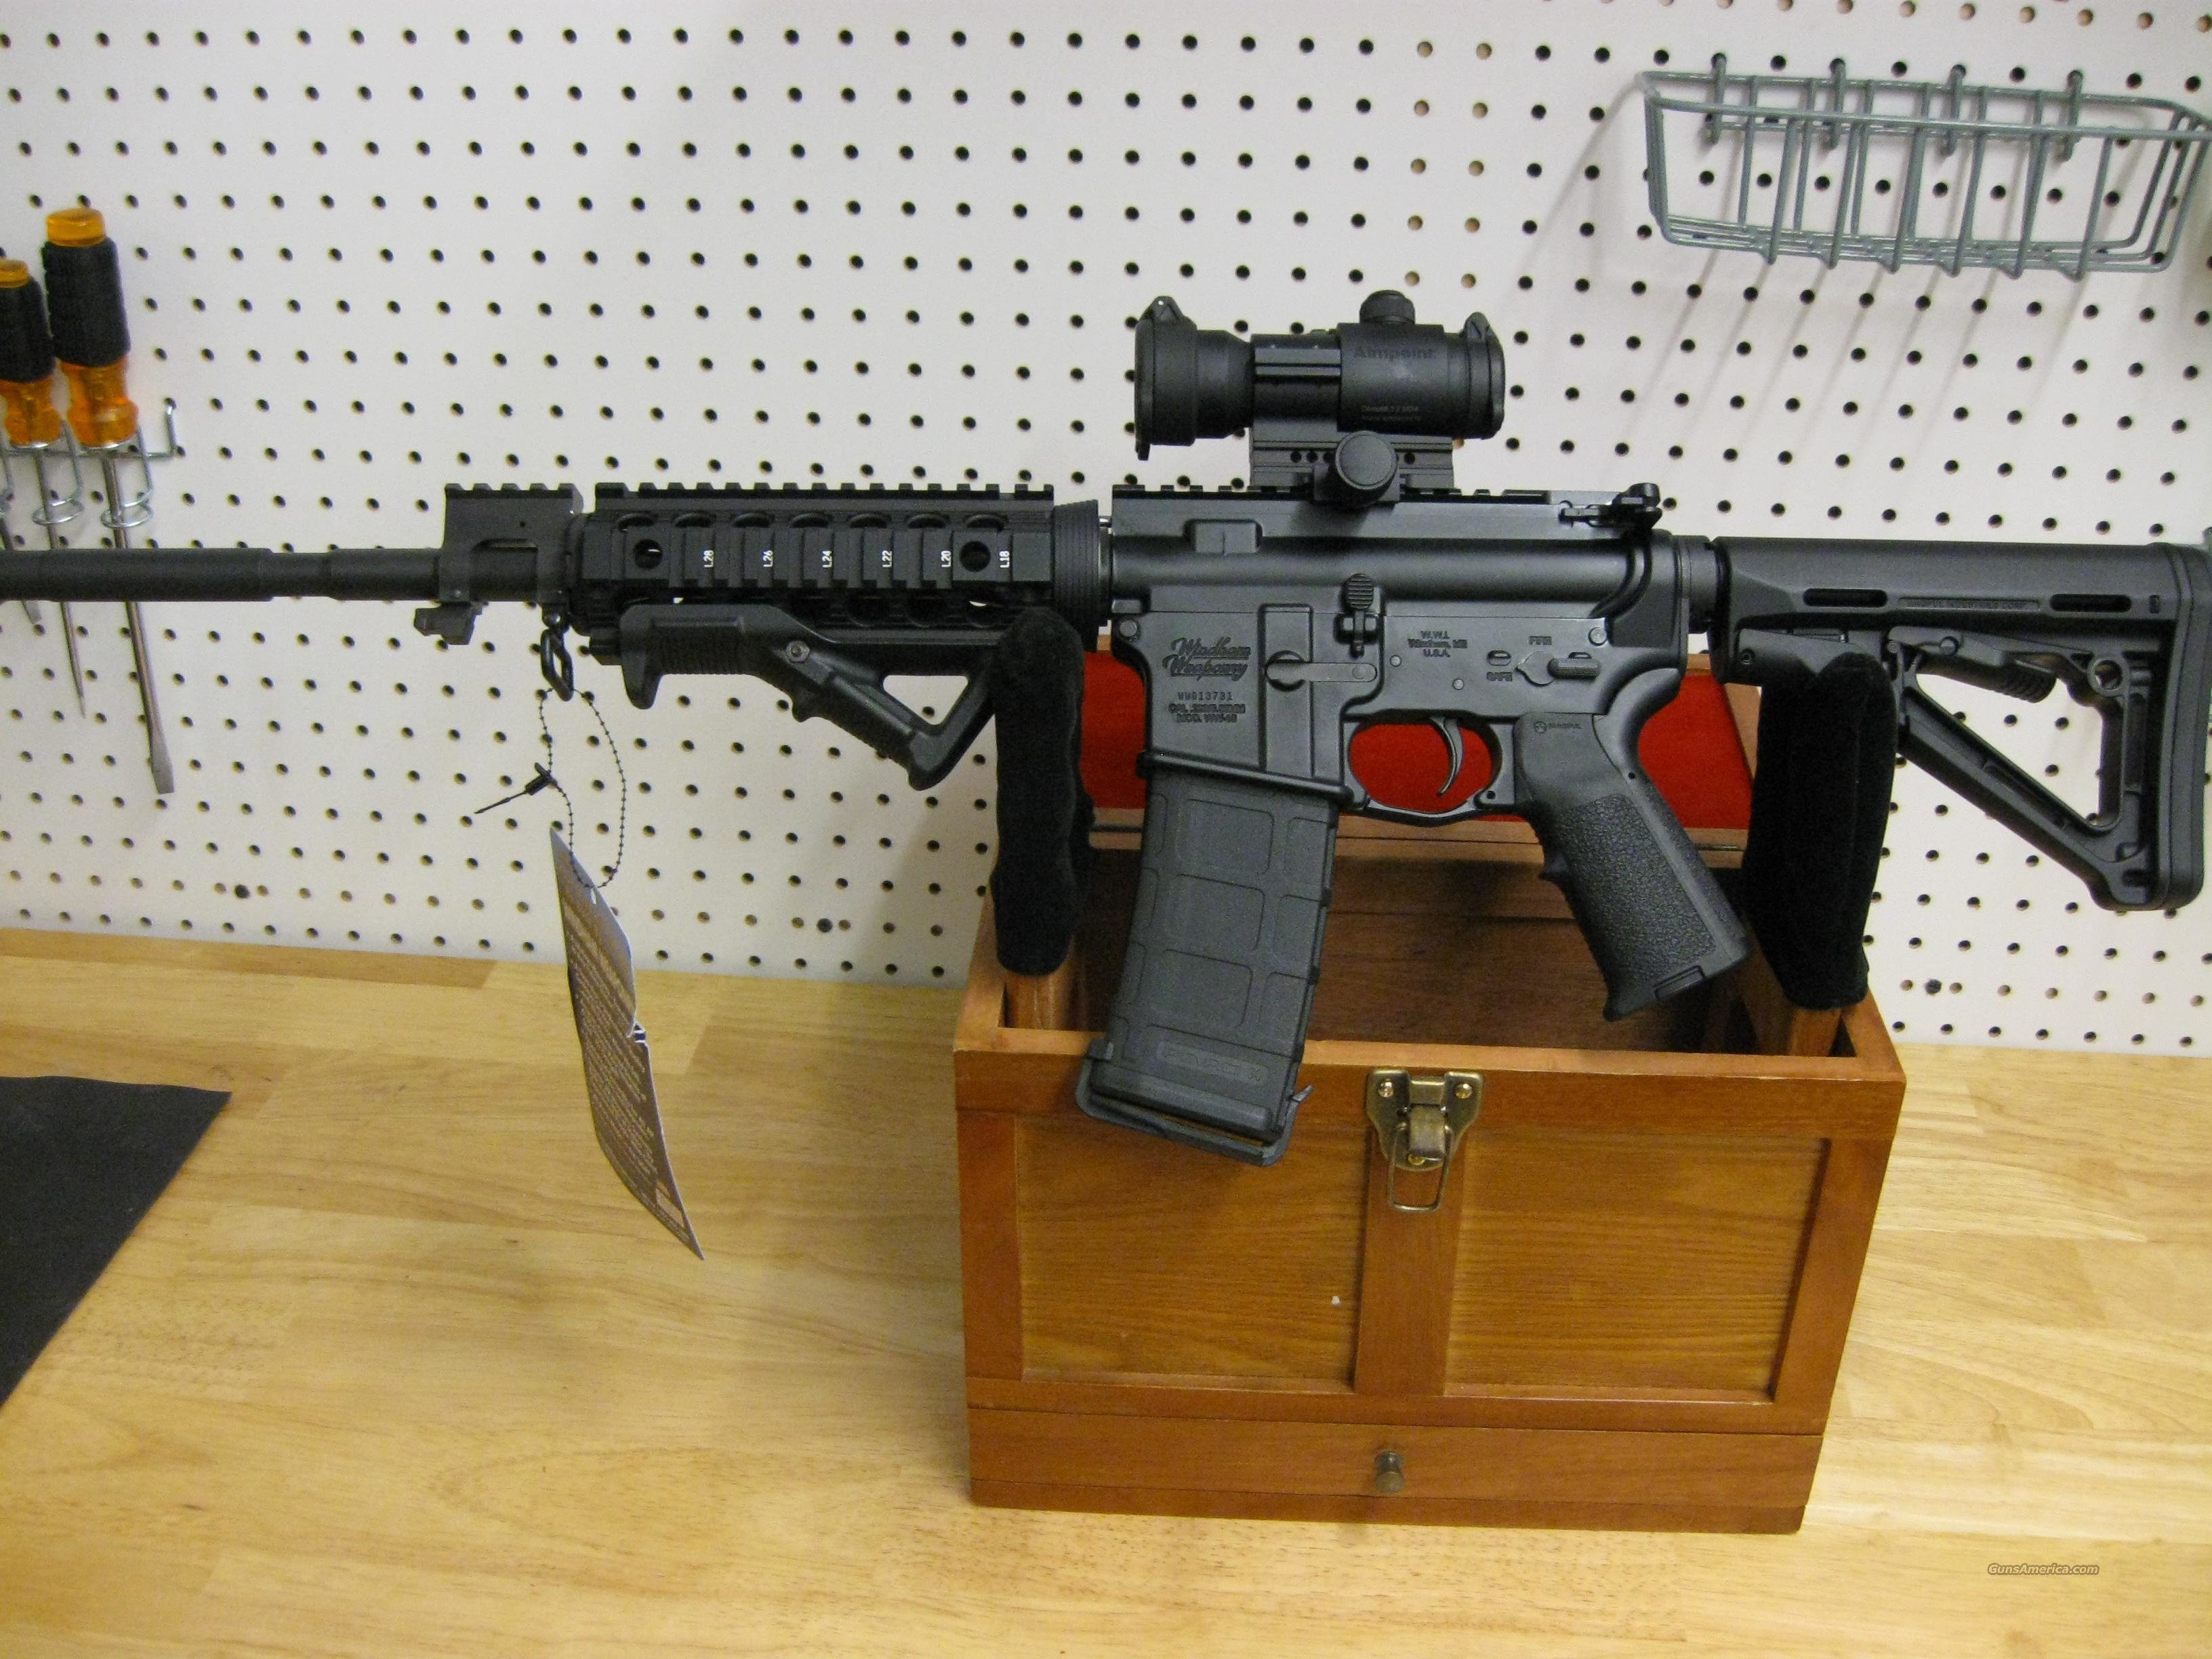 Windham Weaponry SRC M4 A3 Rail Rifle, 5.56mm, Aimpoint optic, Magpul, Troy, 30rd   Guns > Rifles > Windham Weaponry Rifles